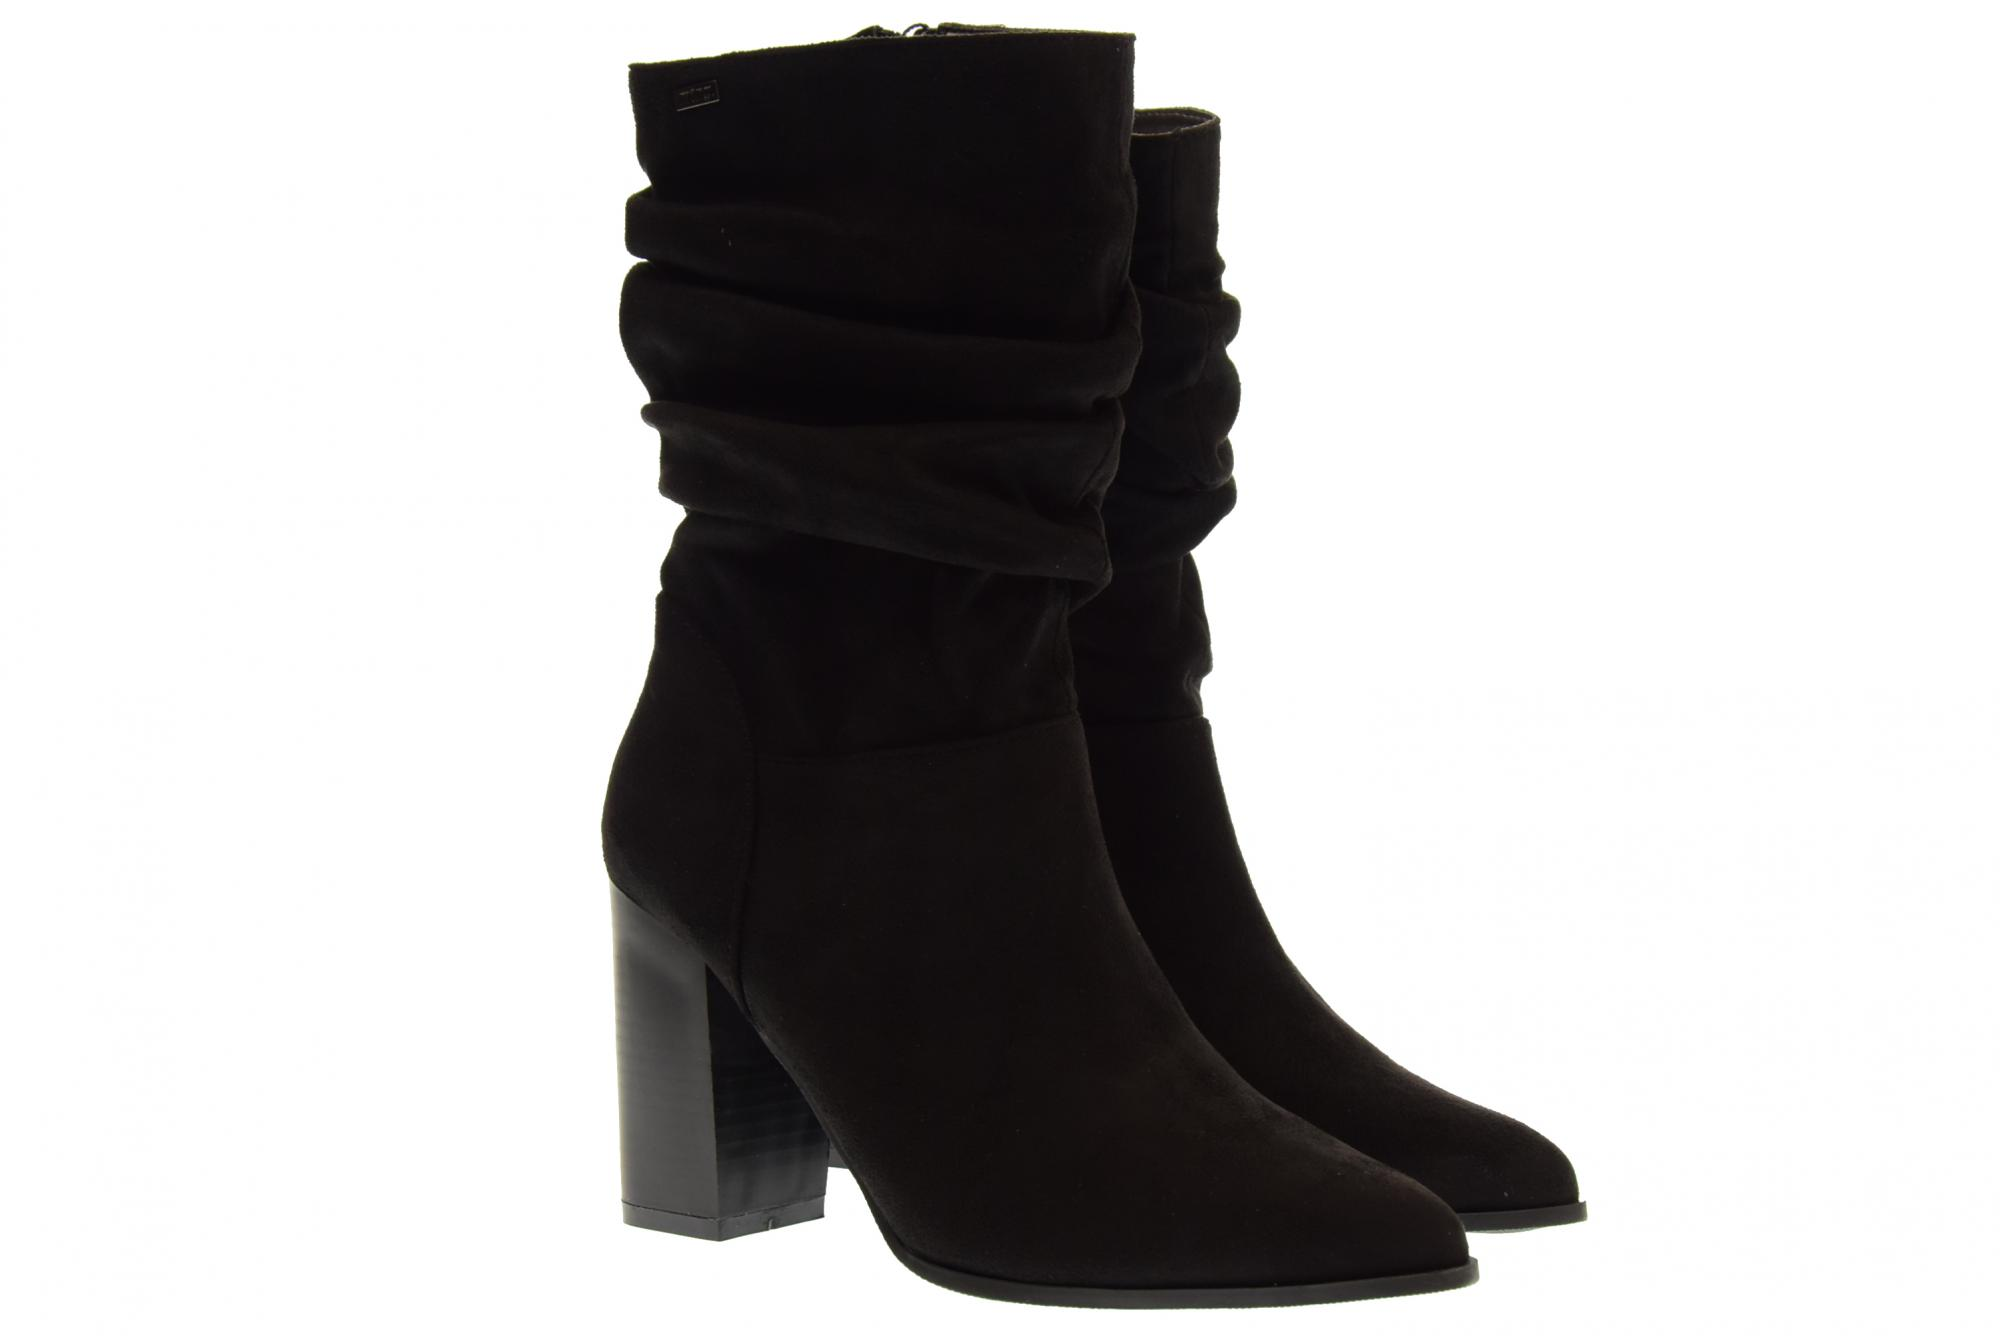 MTNG a18g Chaussures Femme Bottines 57443 c35442 Cali